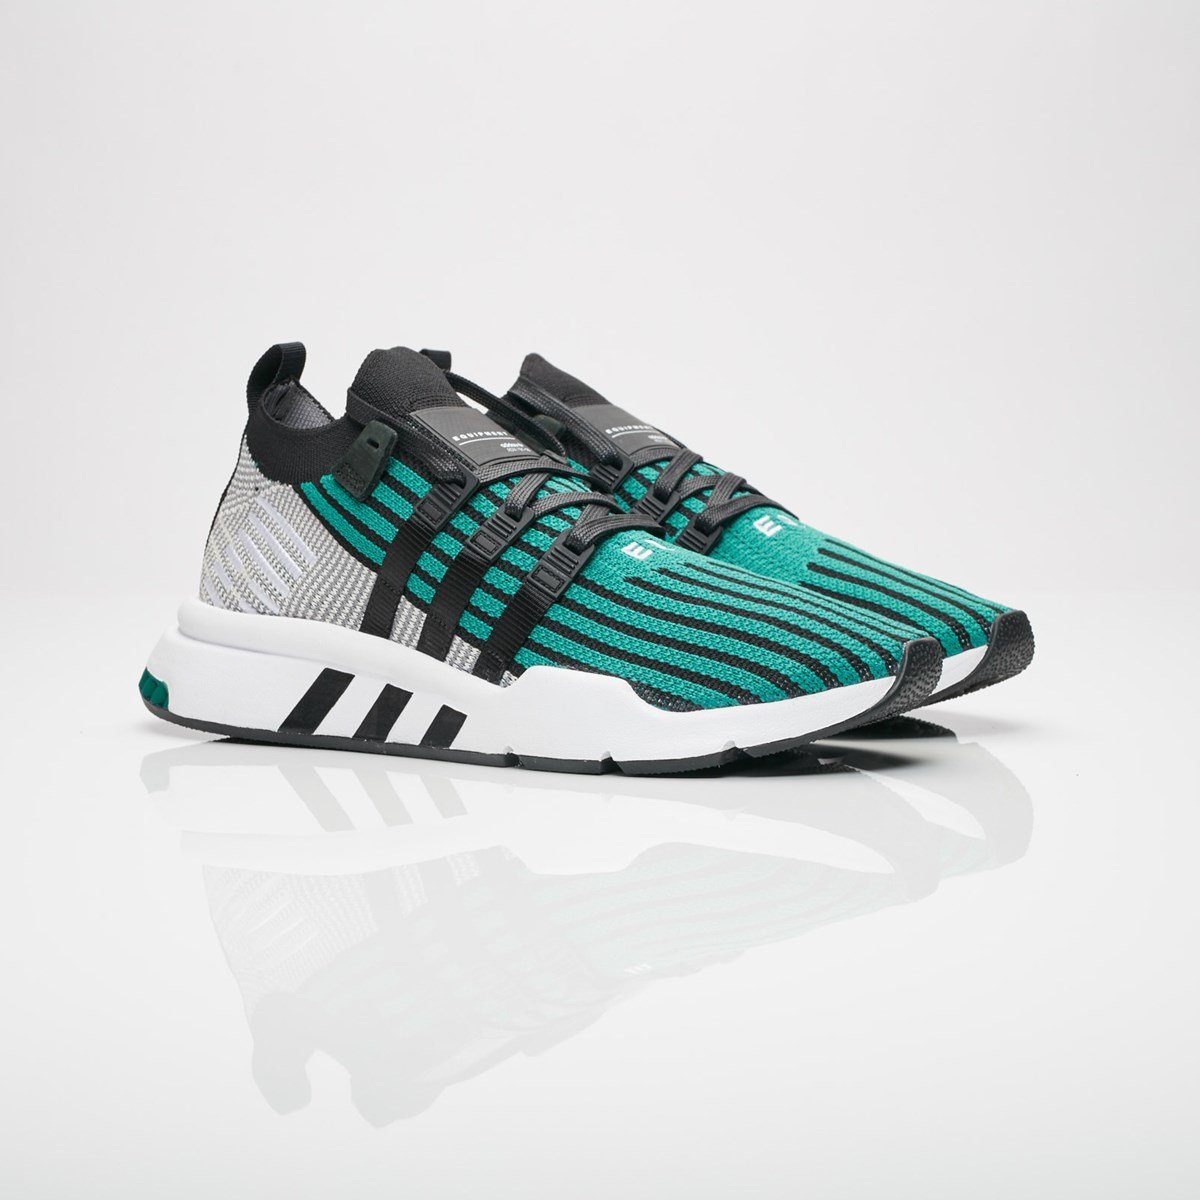 adidas Originals EQT SUPPORT MID ADV PK Adidas originals EQT support mid ADV prime knit cq2998